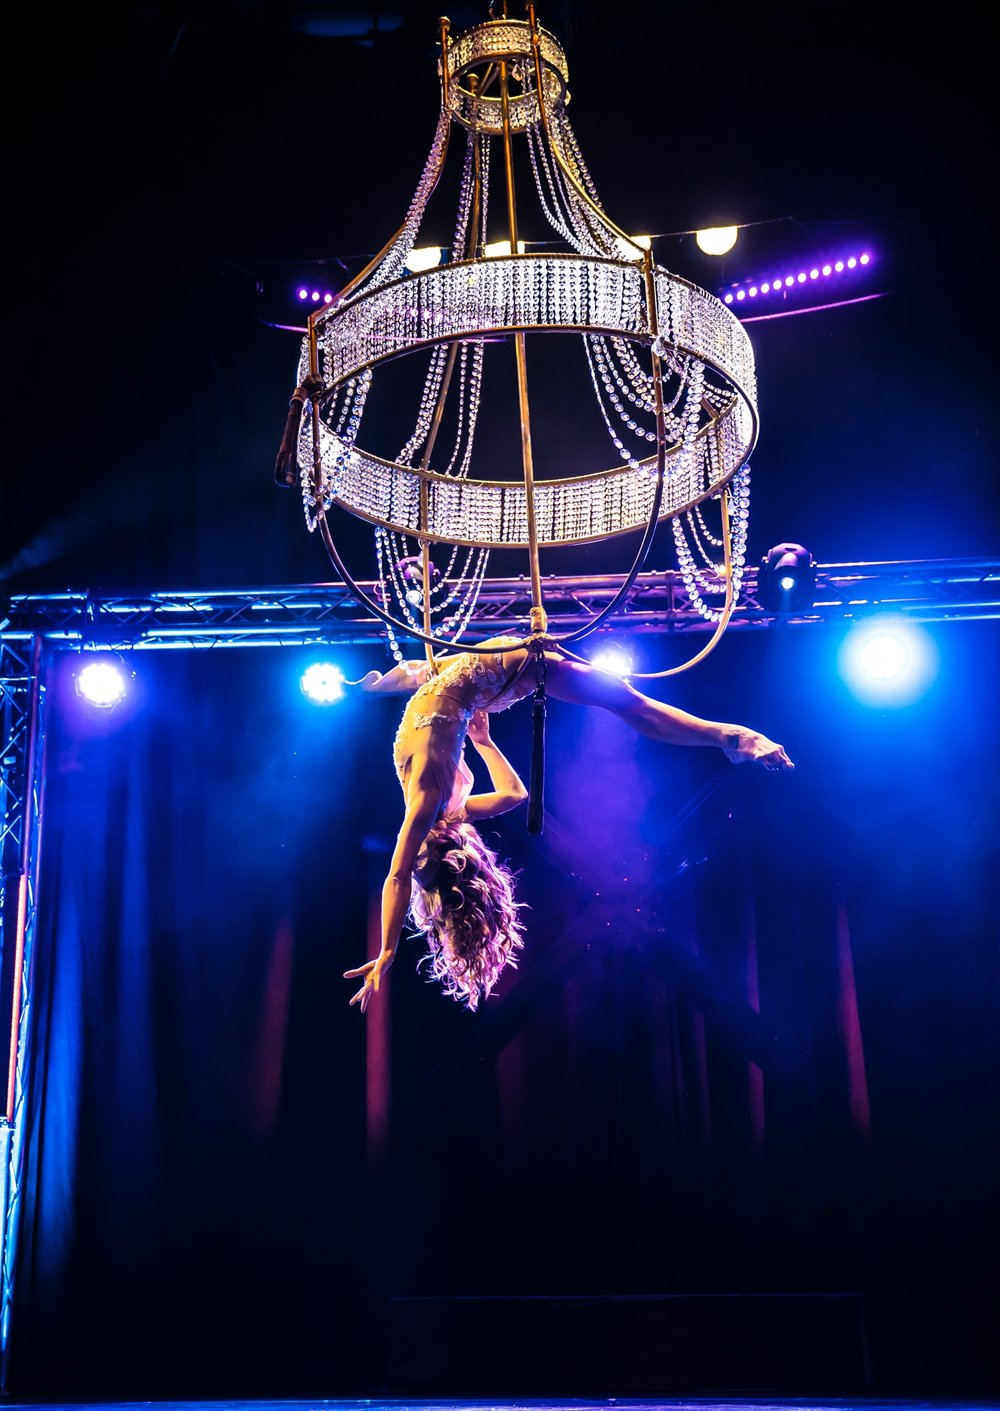 Chandelier Performance Artist - Luftakrobatik am Kronleuchter - Flying Chandelier Showact - Air Candy Berlin - Luftartistin